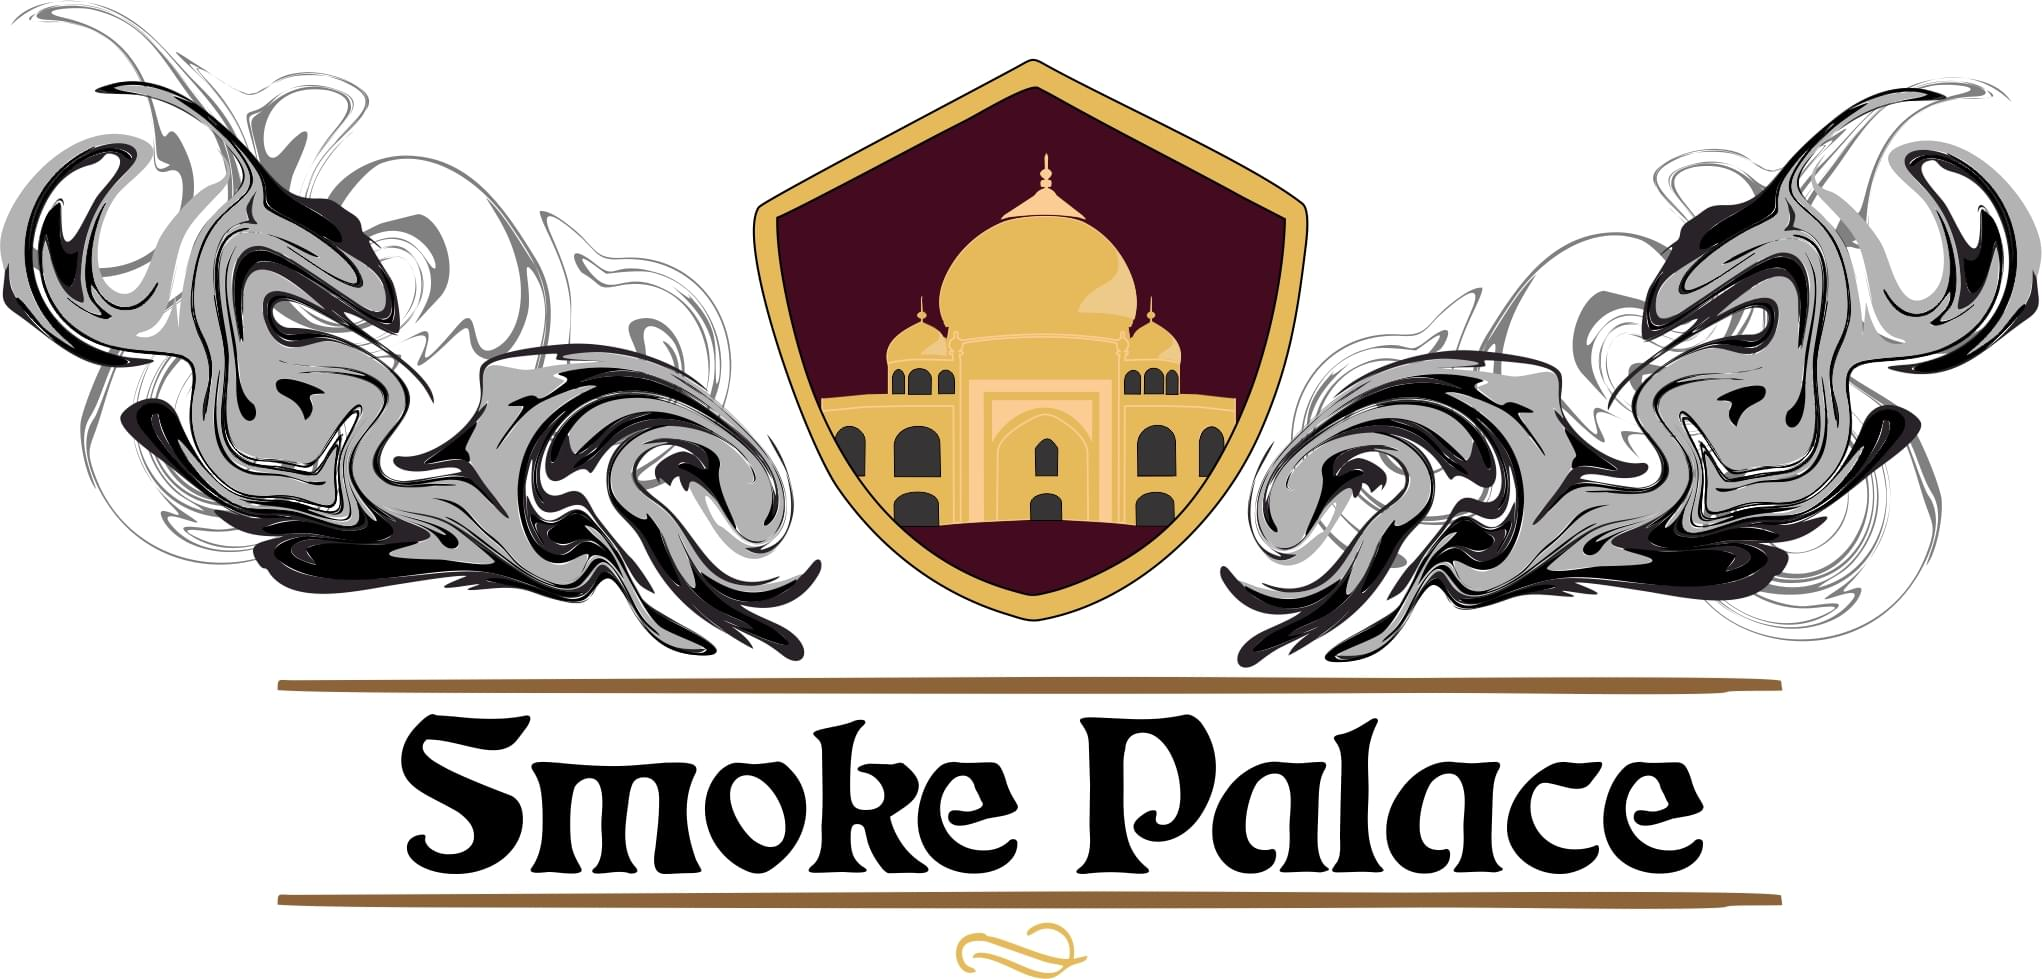 Go Green with Smoke Palace